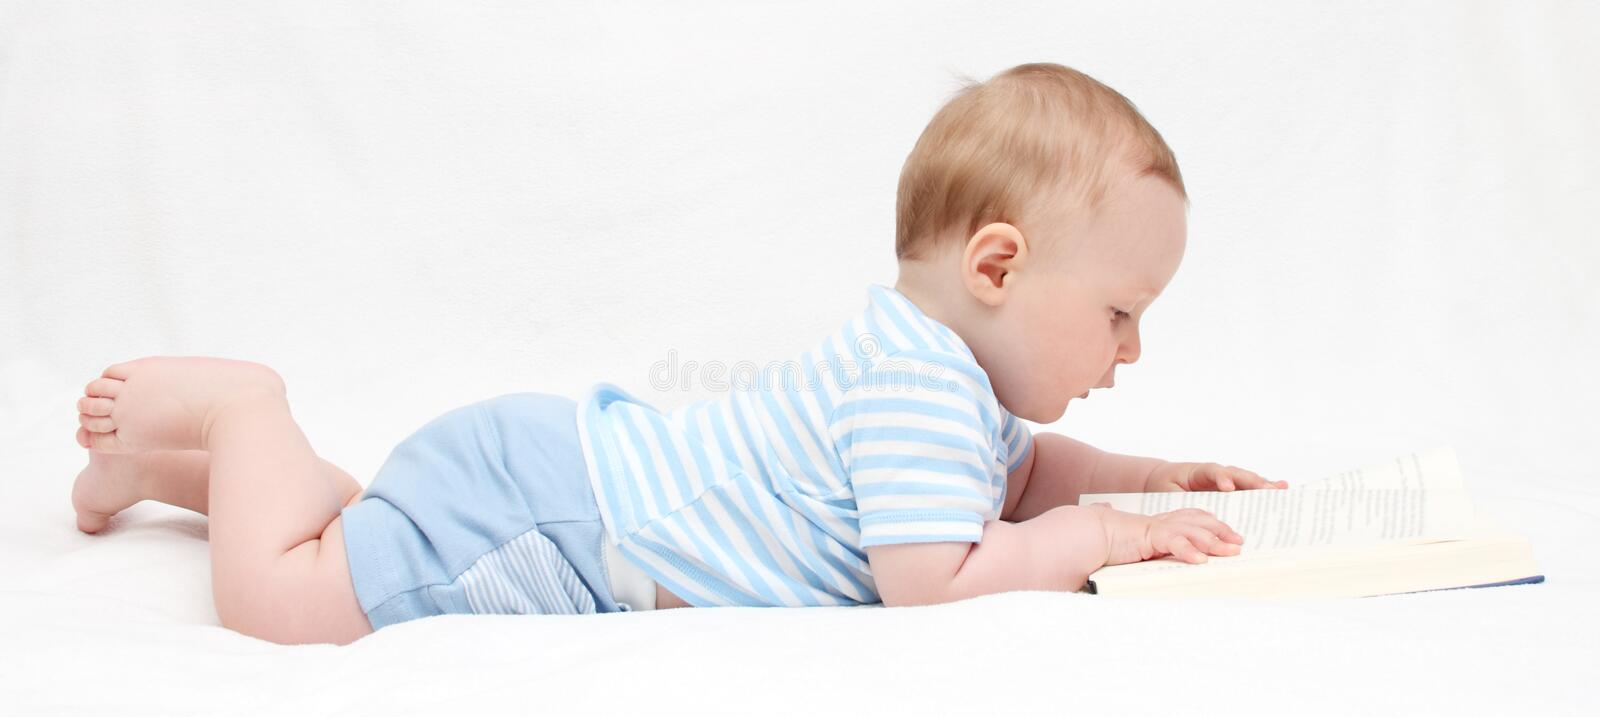 Baby boy reading a book child royalty free stock photo